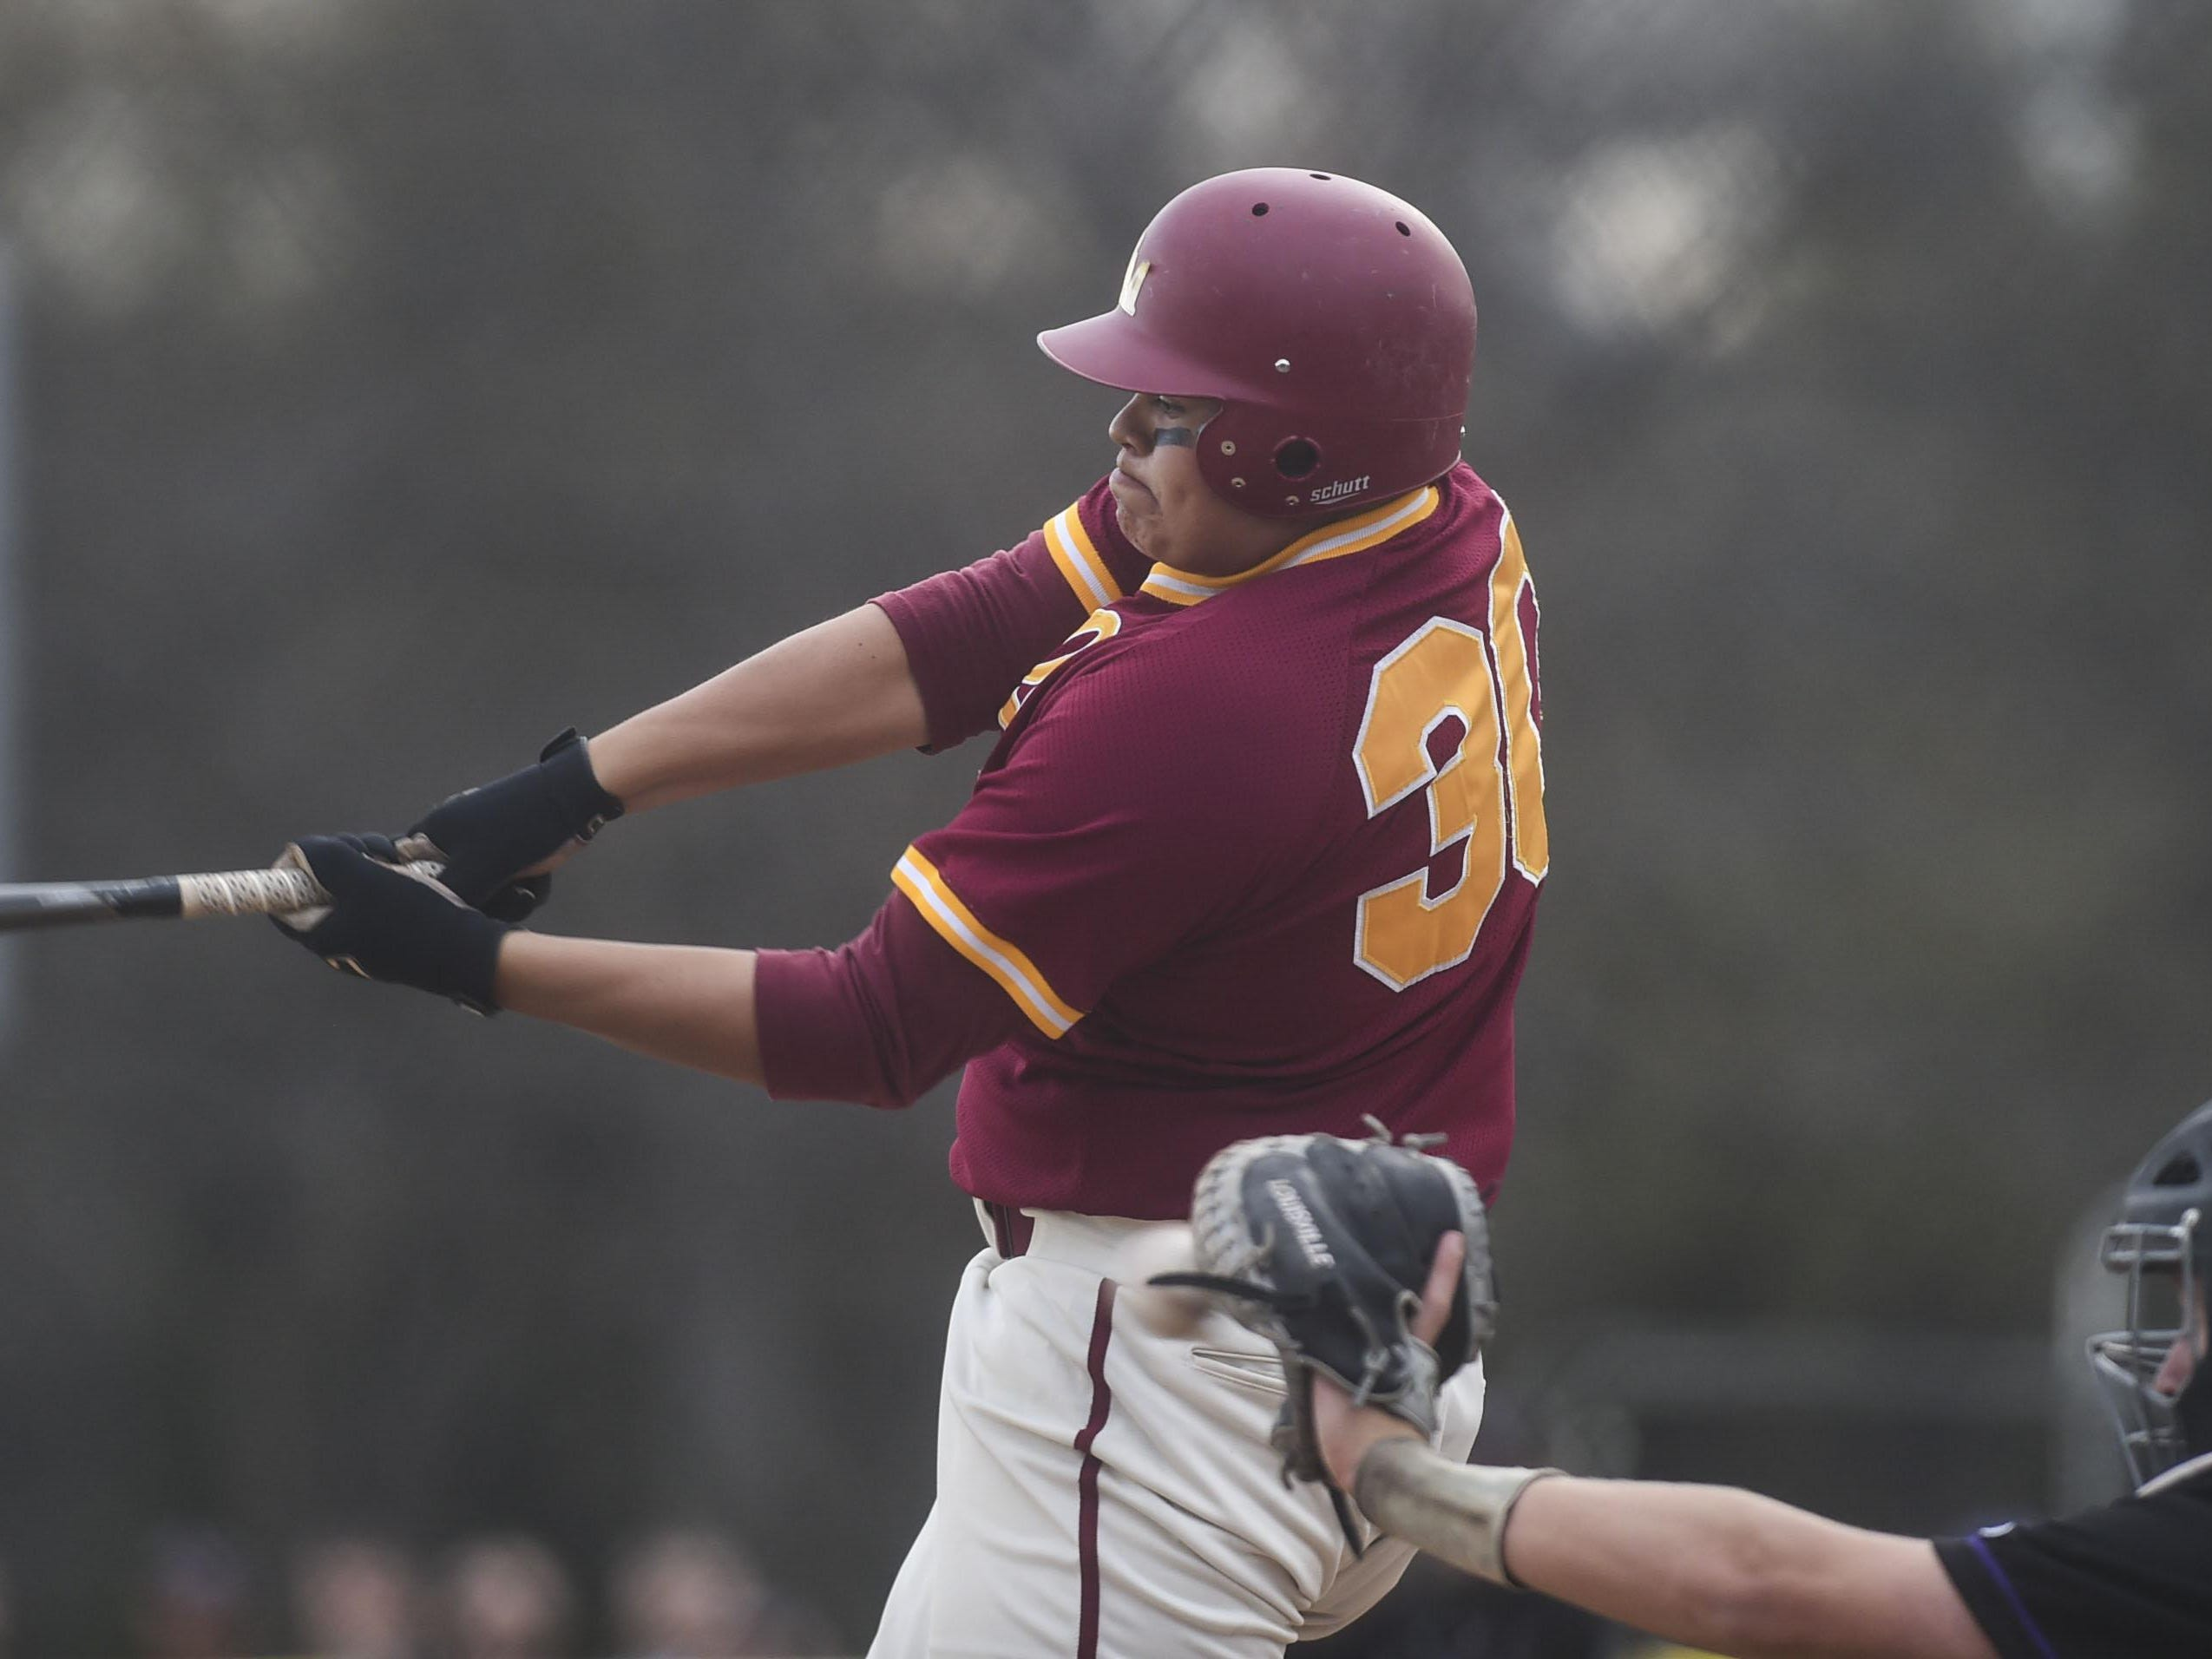 Rocky Mountain's Austin Alarid swings at a pitch in a game last season. The Lobos are ranked No. 5 in Class 5A.